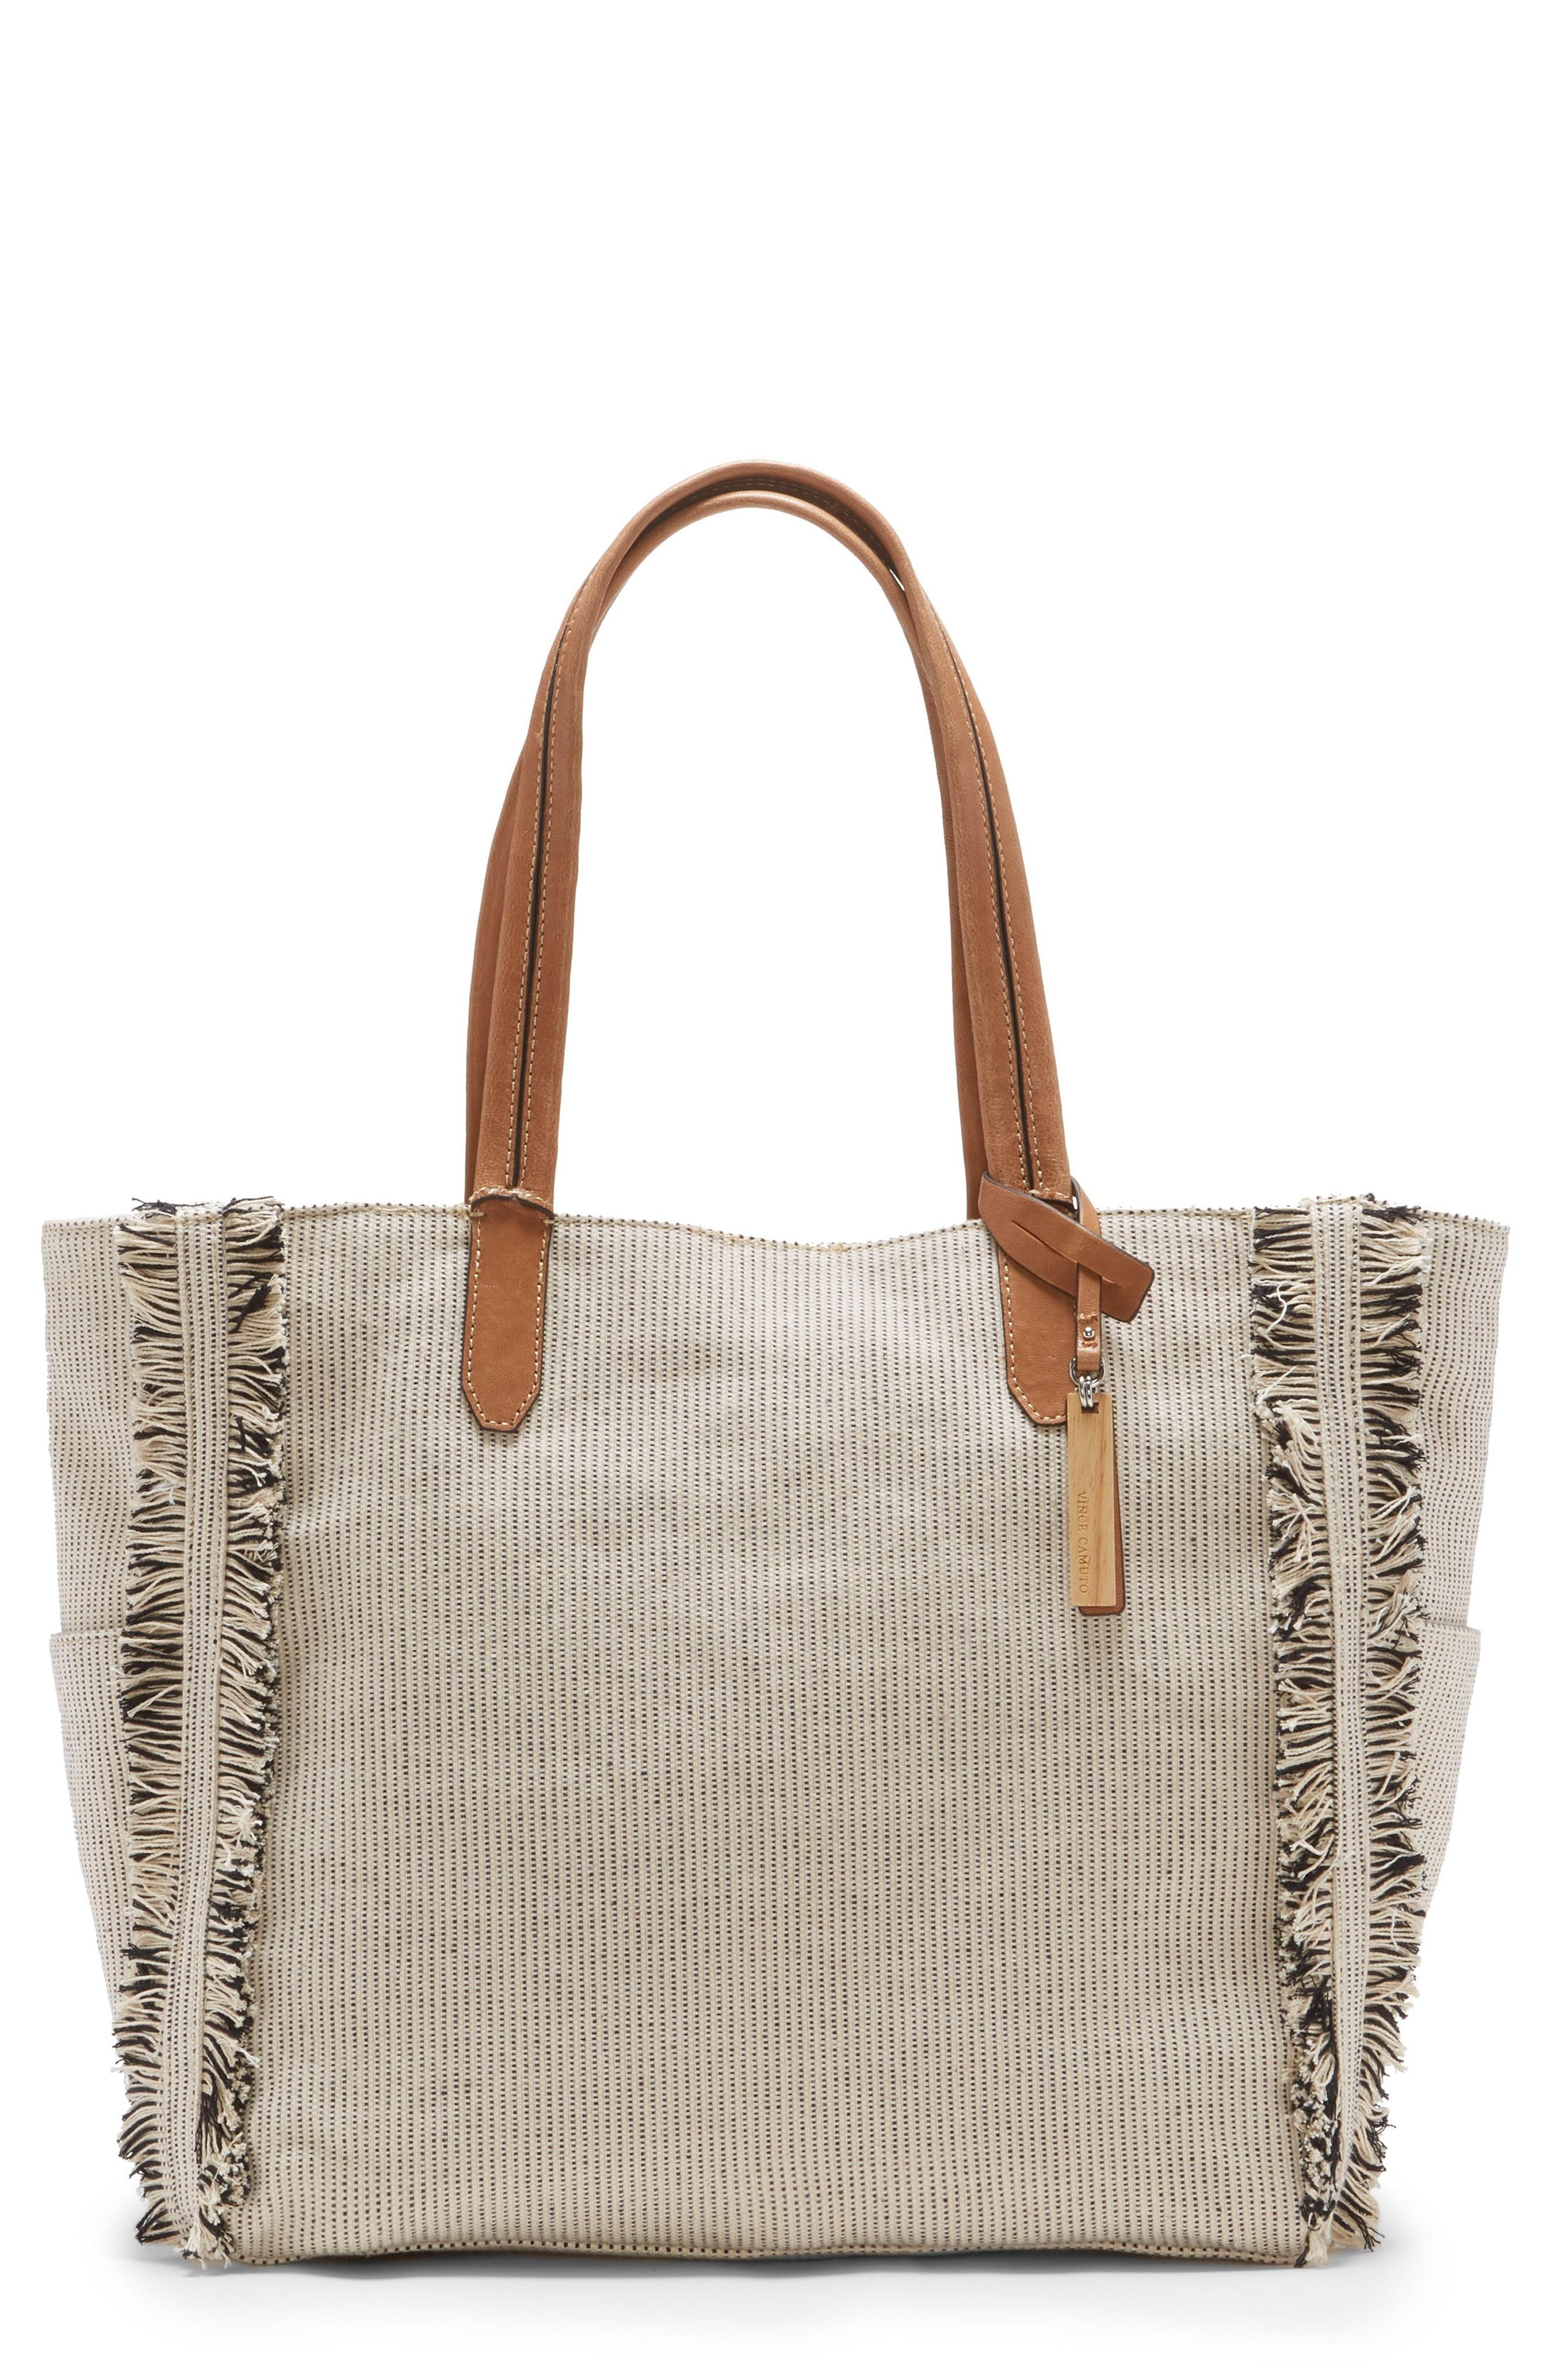 Vince Camuto Iona Canvas Tote - Beige In Beige/ White